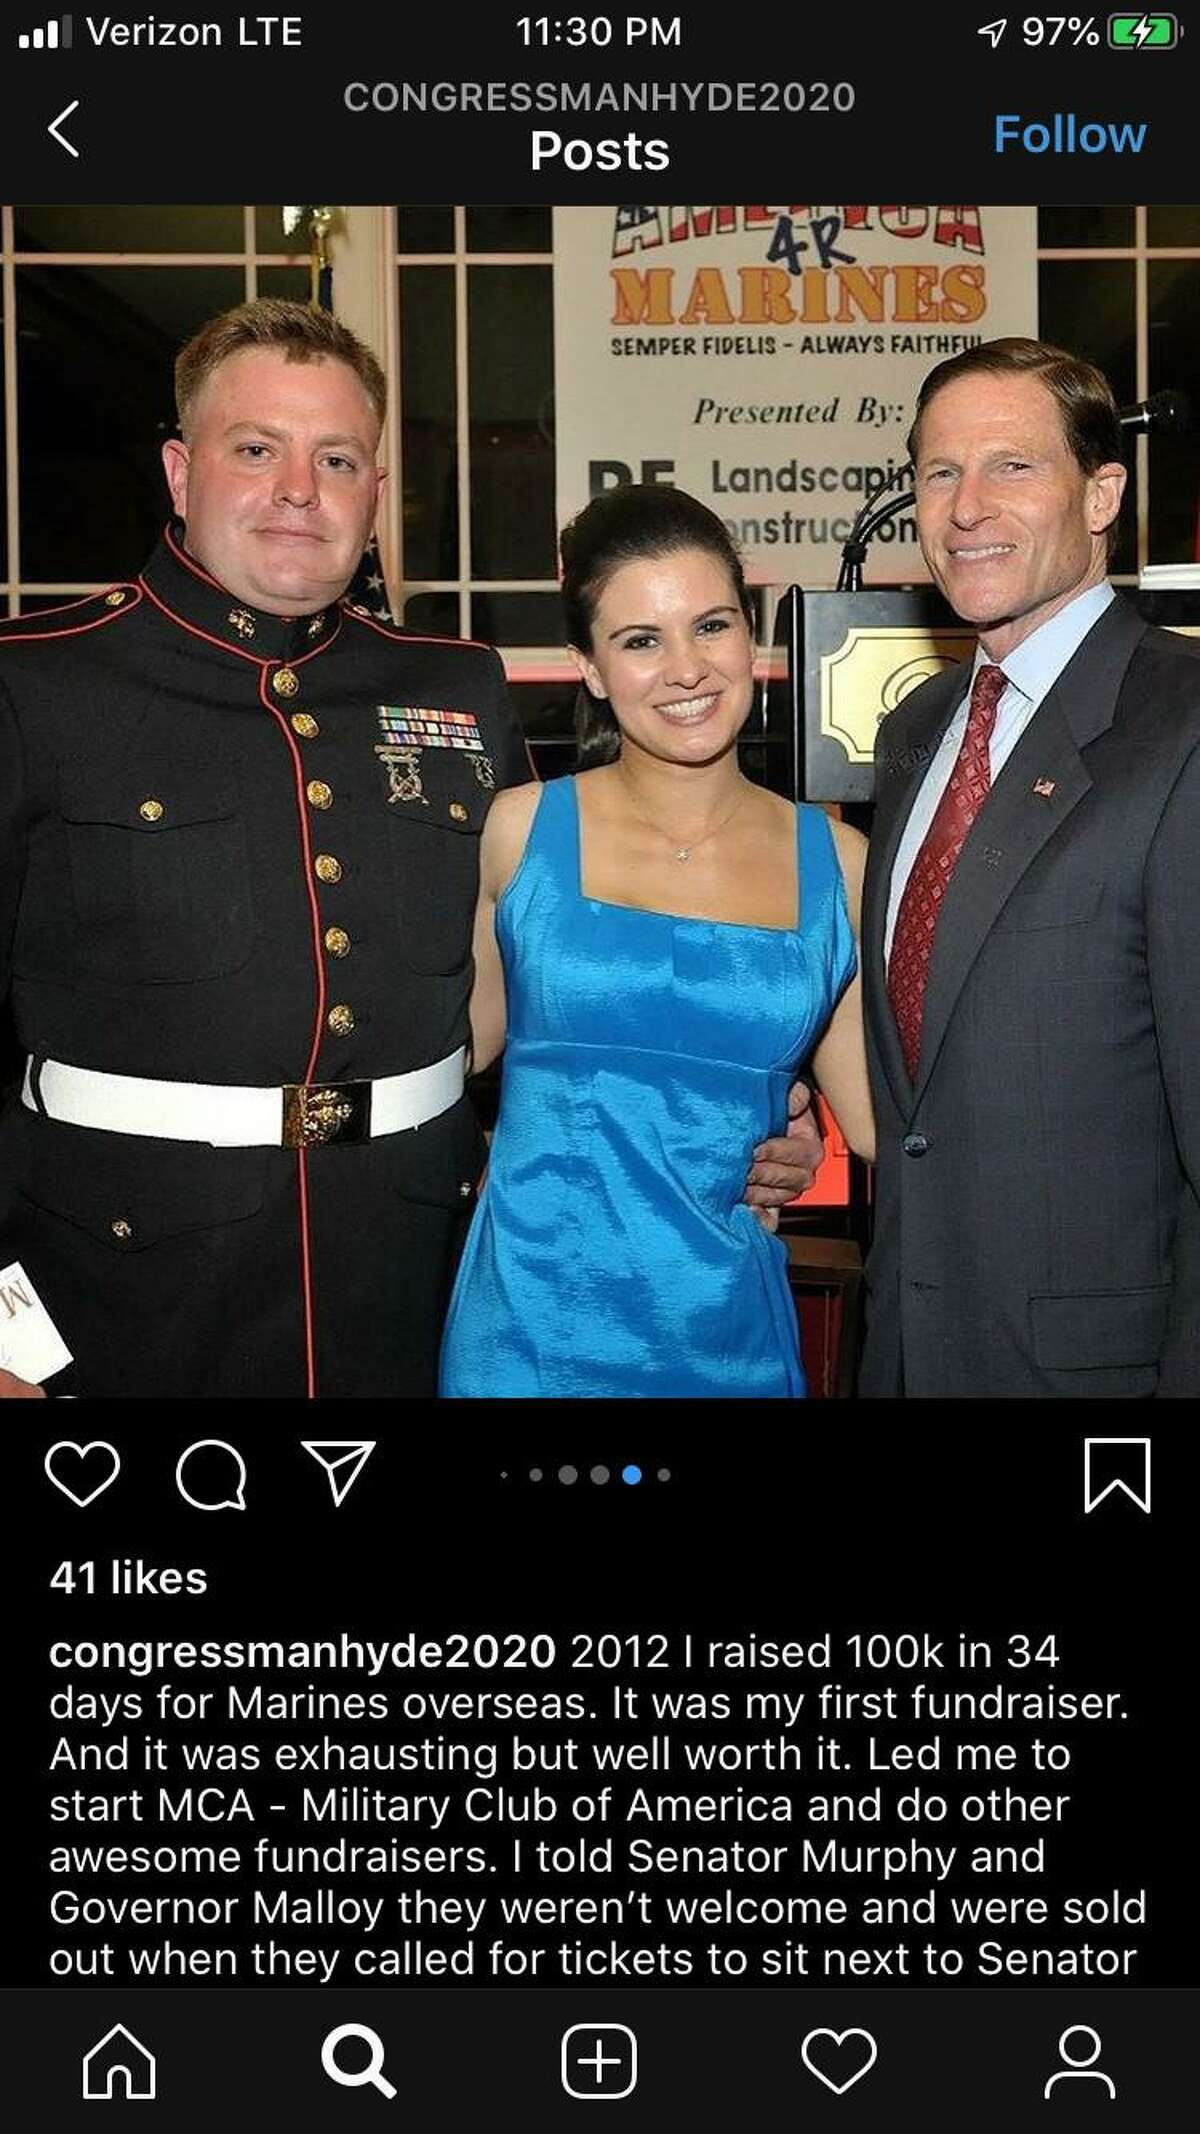 Robert Hyde (left) poses in a photo with U.S. Sen. Richard Blumenthal, D-Conn., (right) at a fundraiser for U.S. Marines Hyde organized in 2012. Hyde shared this image on his 2020 campaign Instagram.